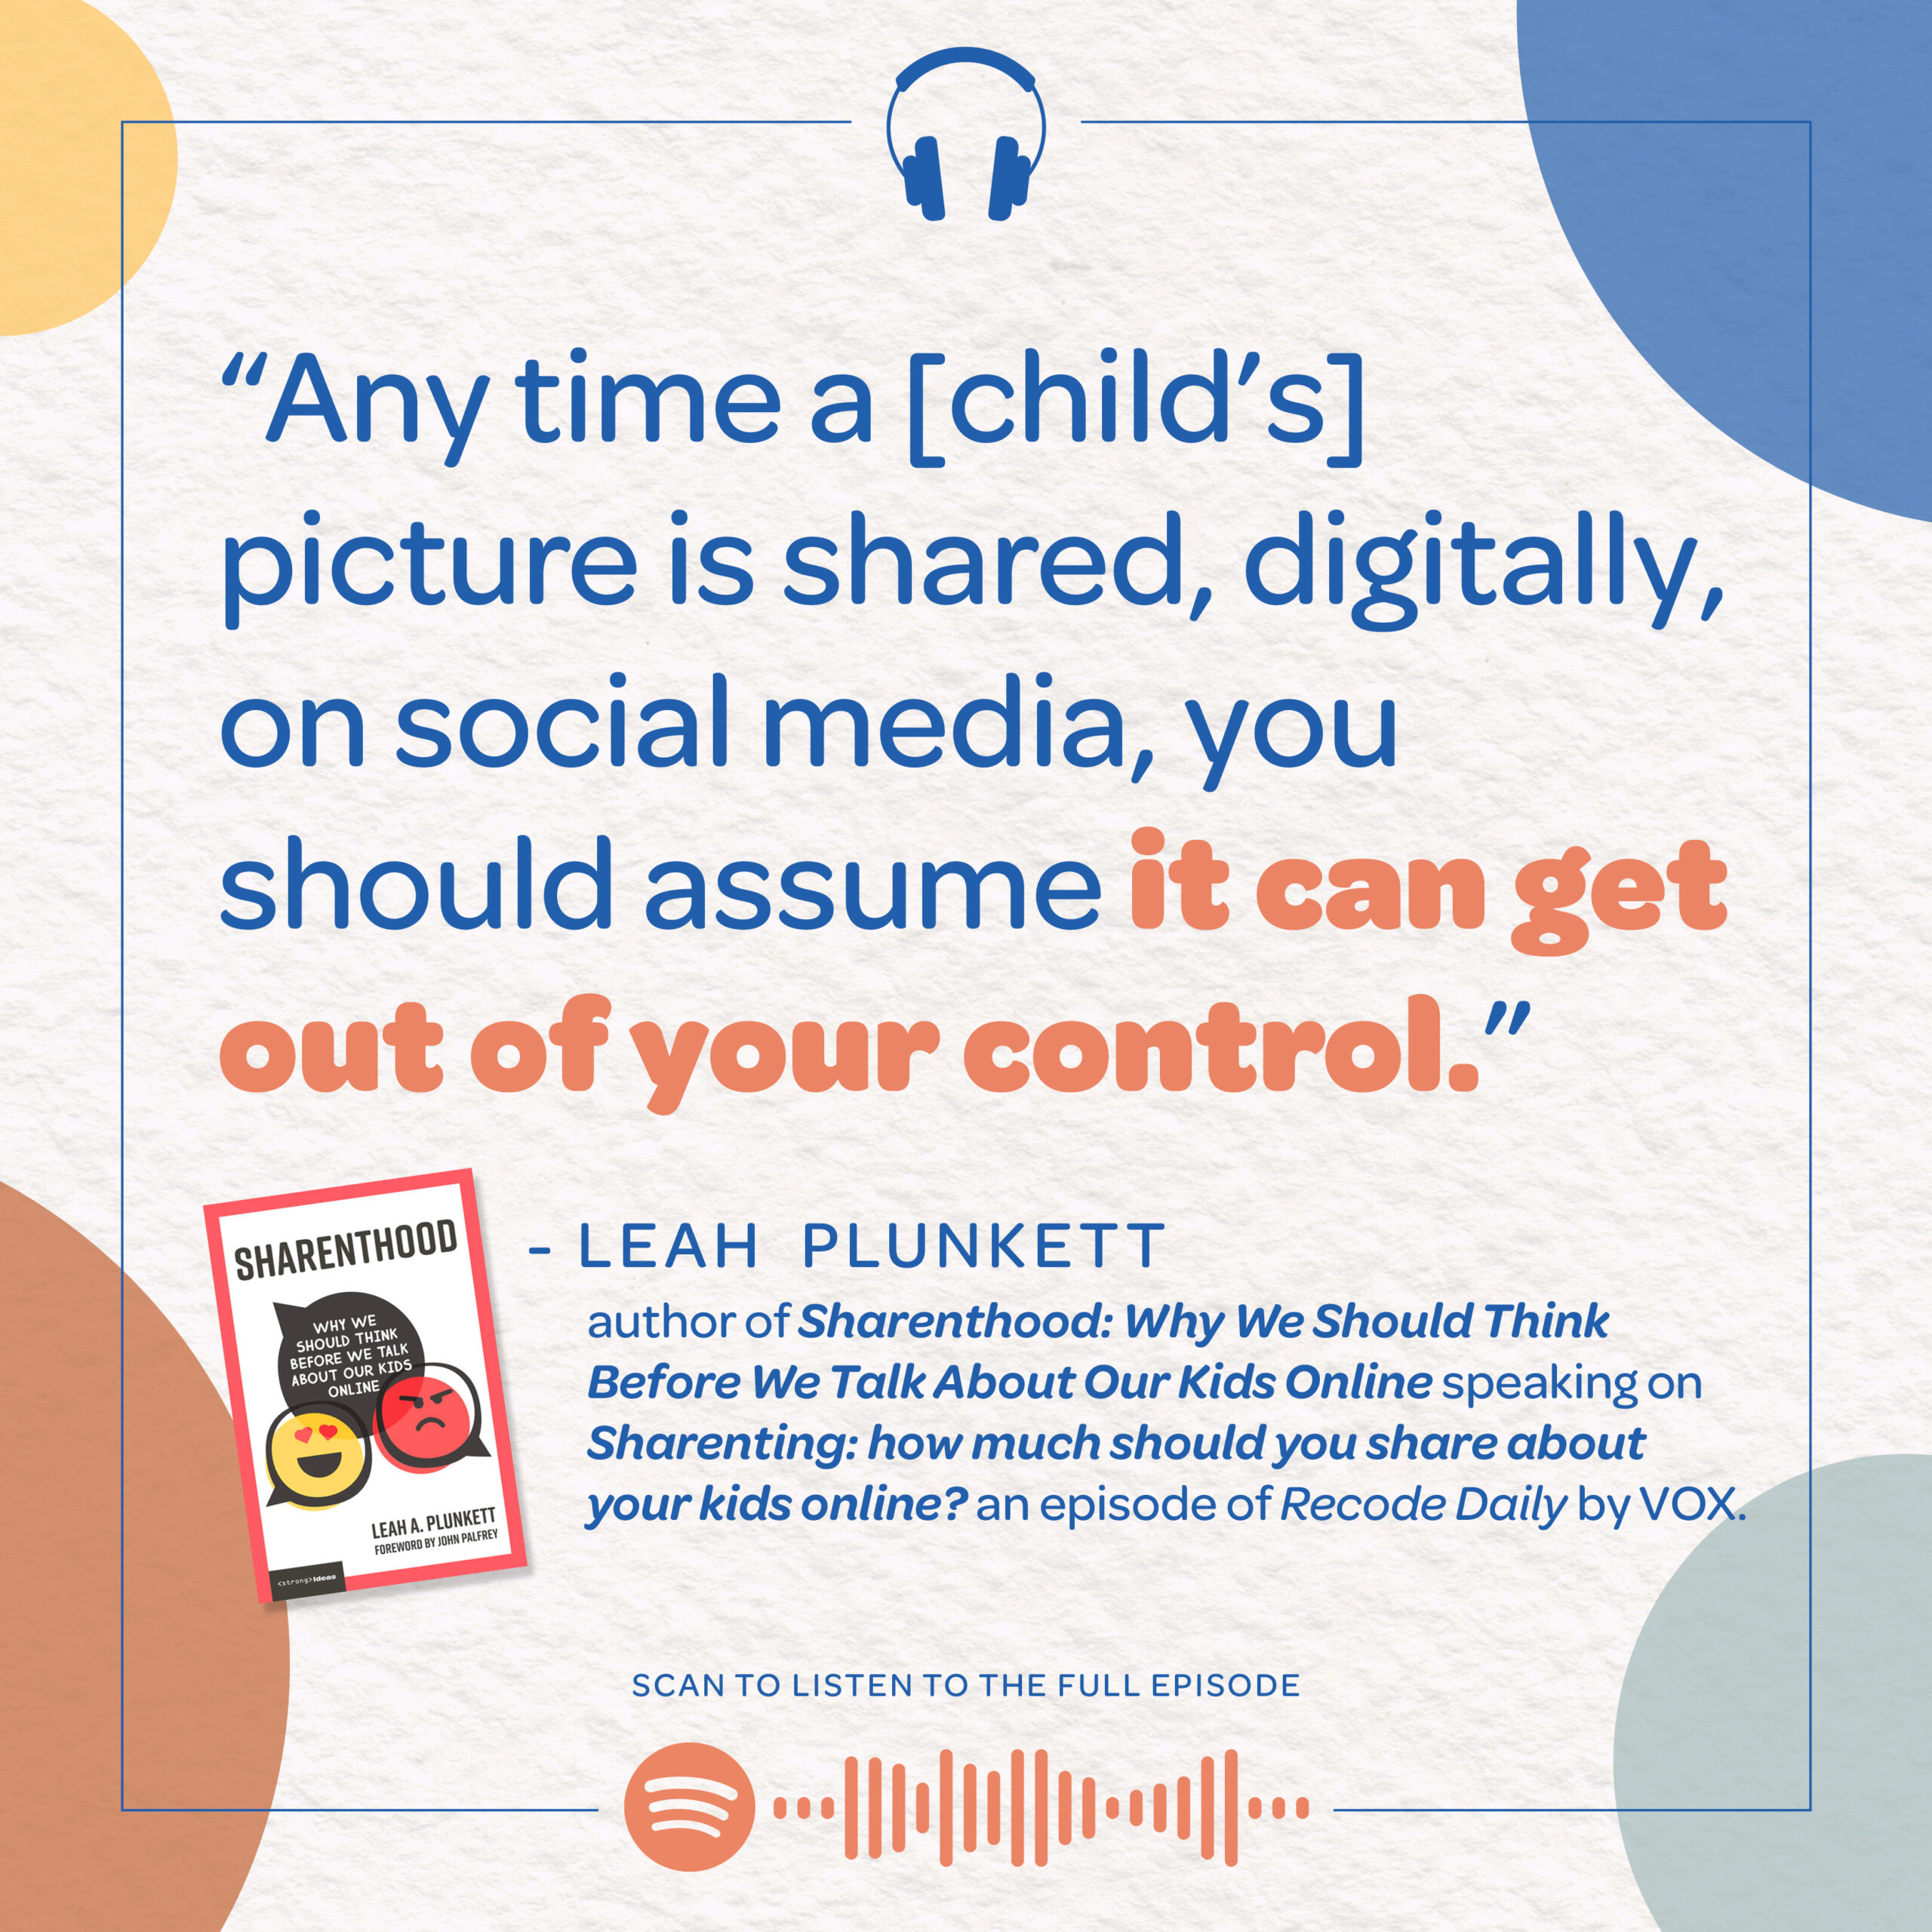 """""""Any time a [child's] picture is shared, digitally, on social media, you should assume it can get out of your control."""" - Leah Plunkett, author of Sharenthood: Why We Should Think Before We Talk About Our Kids Online speaking on Sharenting: how much should you share about your kids online? an episode of Recode Daily by VOX."""